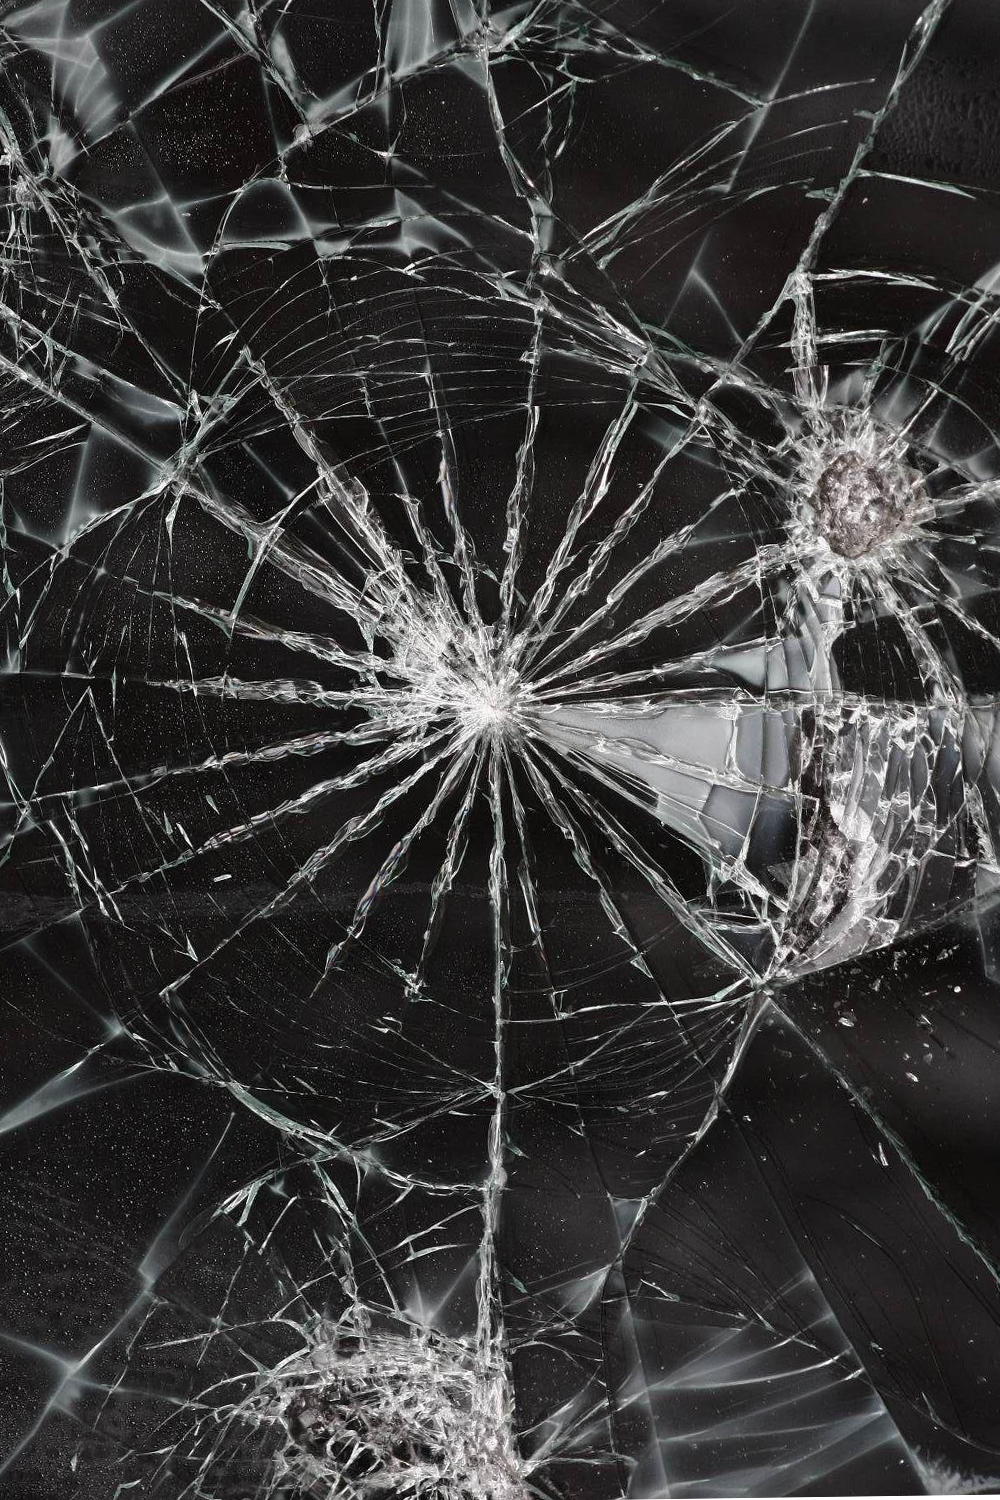 Cracked Screen Wallpaper Iphone 7 Plus In 2020 Broken Screen Wallpaper Broken Screen Screen Wallpaper Hd